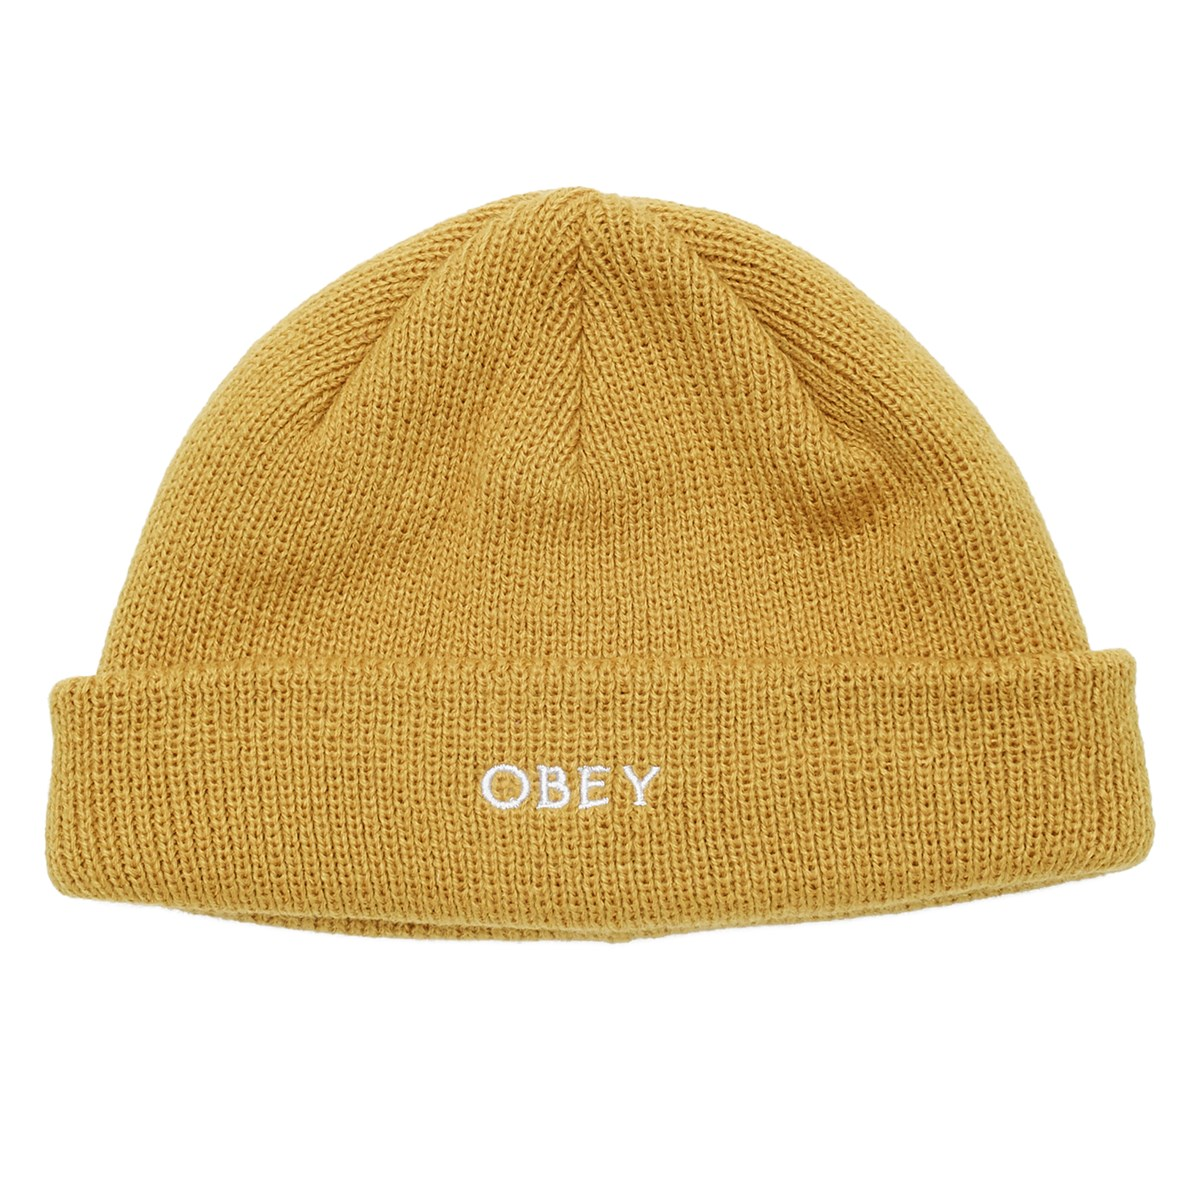 Rollup Beanie in Yellow